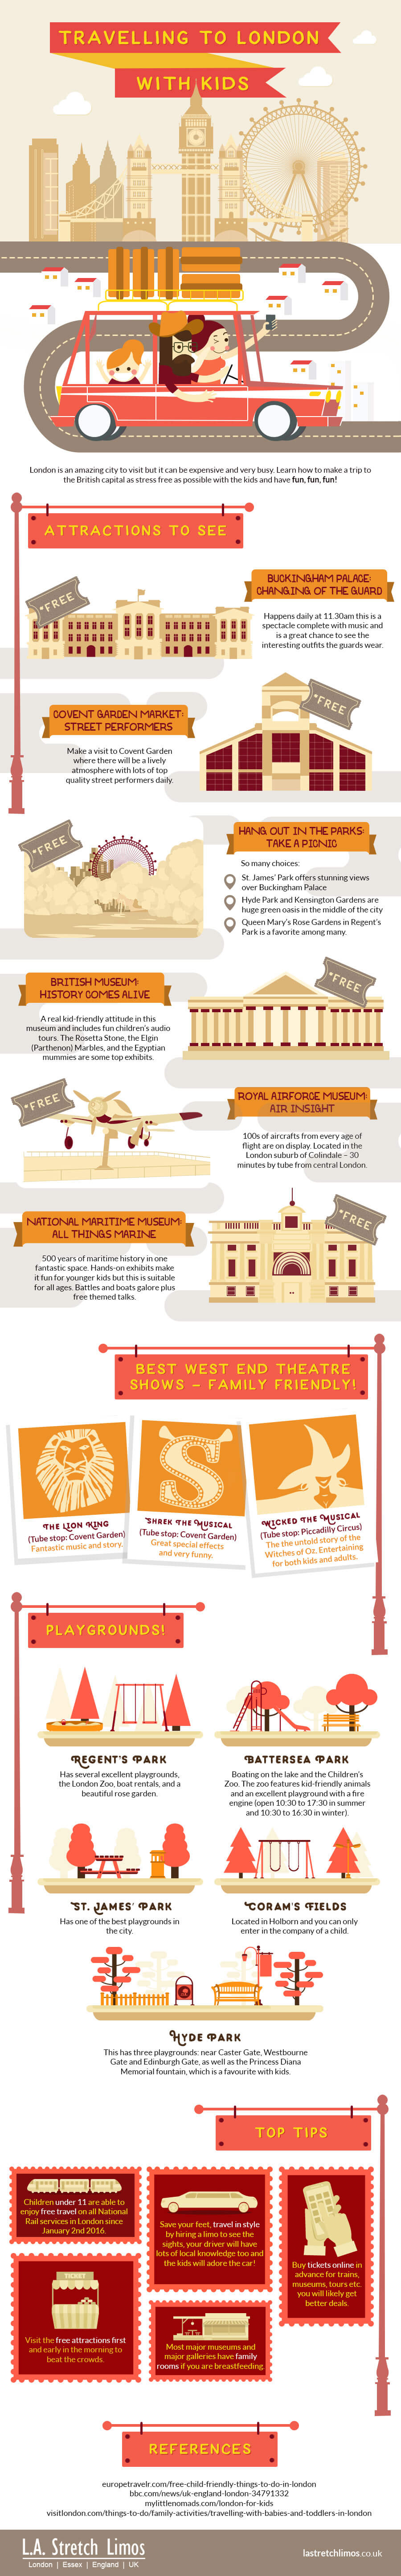 Travelling to London with Kids infographic